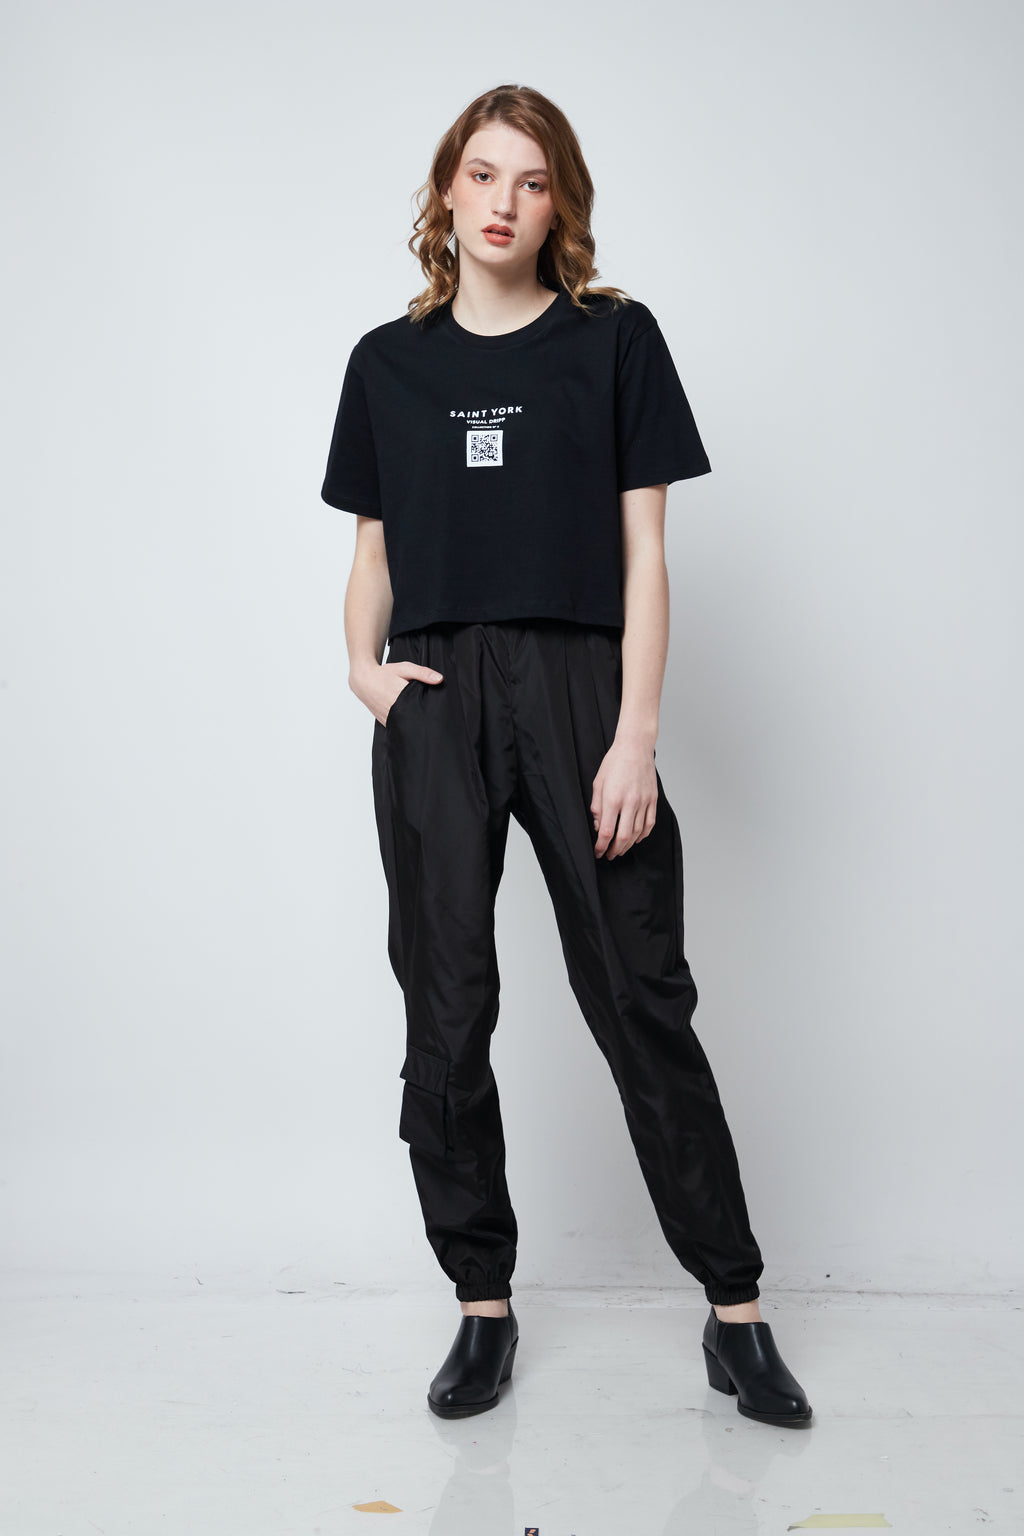 Hyde Cropped T-shirt - Saint York